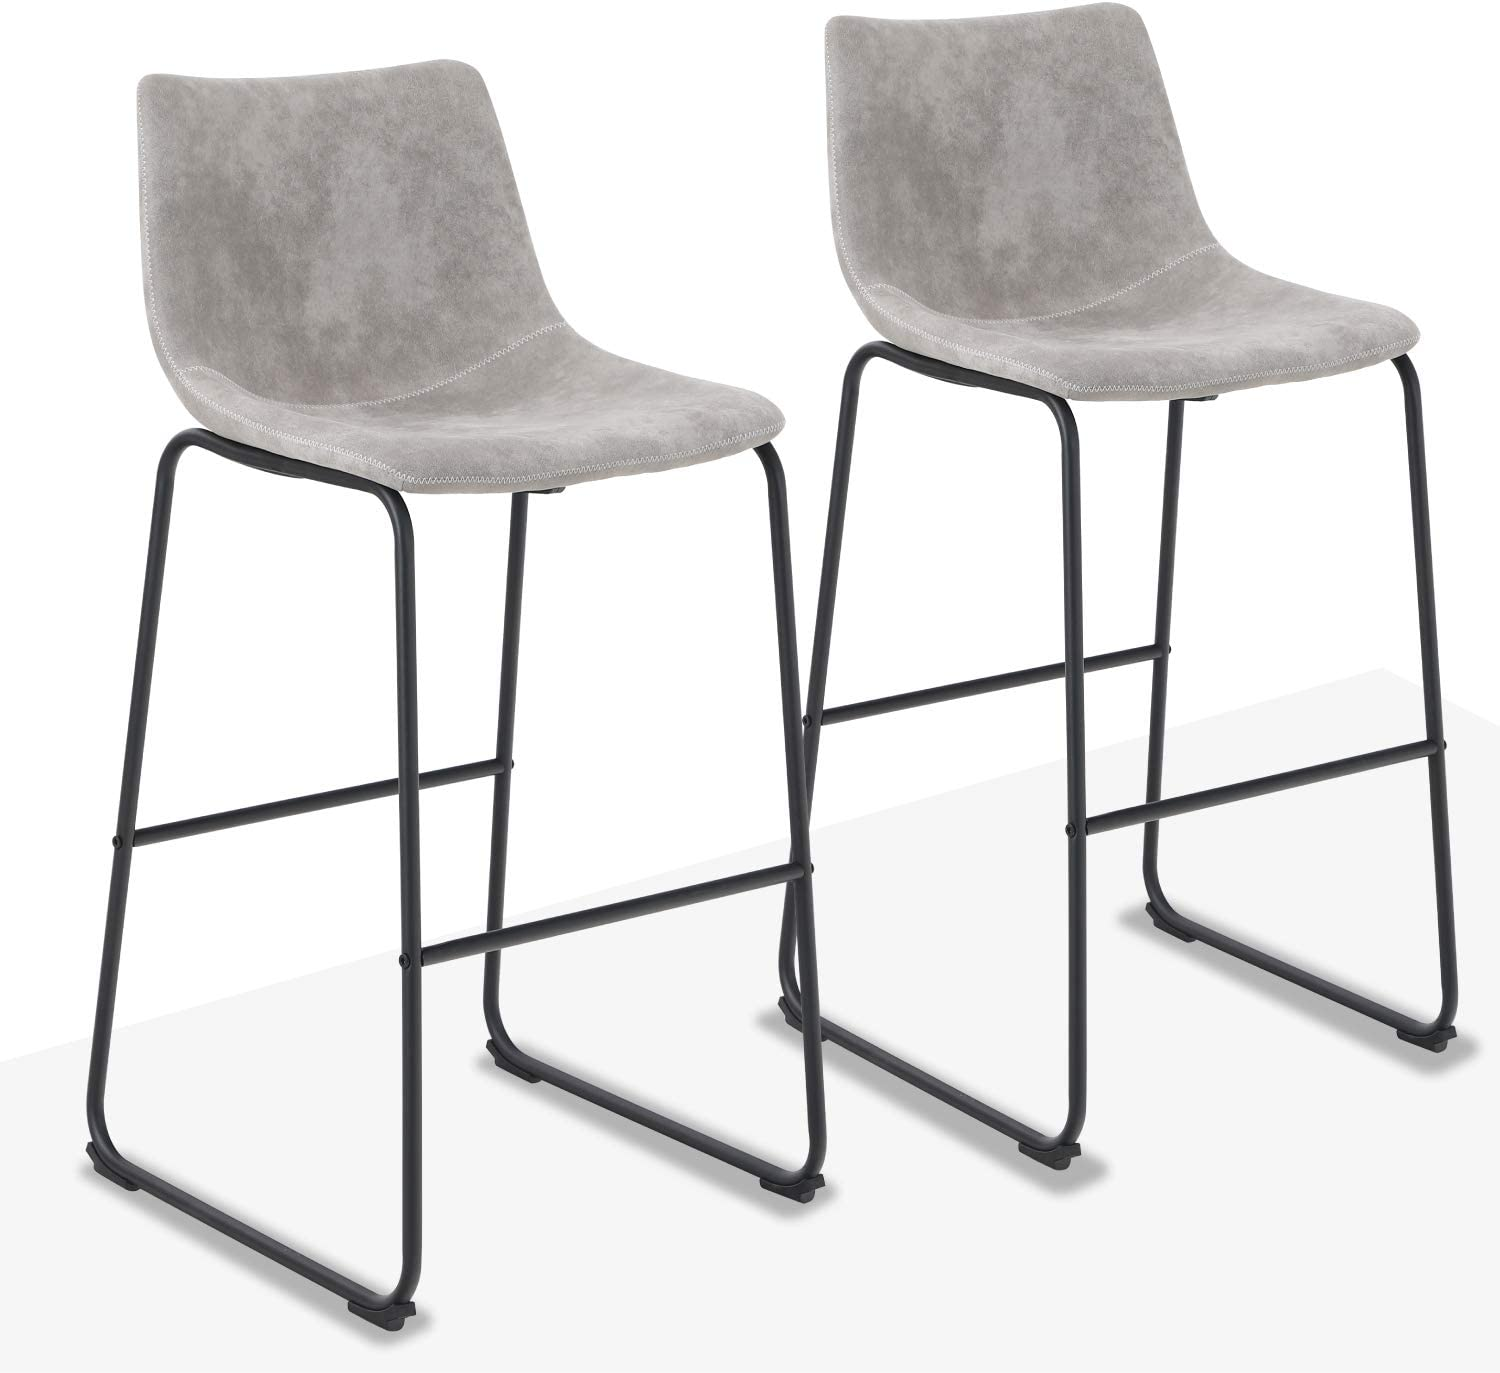 Image of Home and Kitchen ALPHA HOME 30' Bar Stools Vintage Leathaire Counter Height Stools Pub Kitchen Chairs, Dining Room Furniture - 350 lbs Capacity, Grey